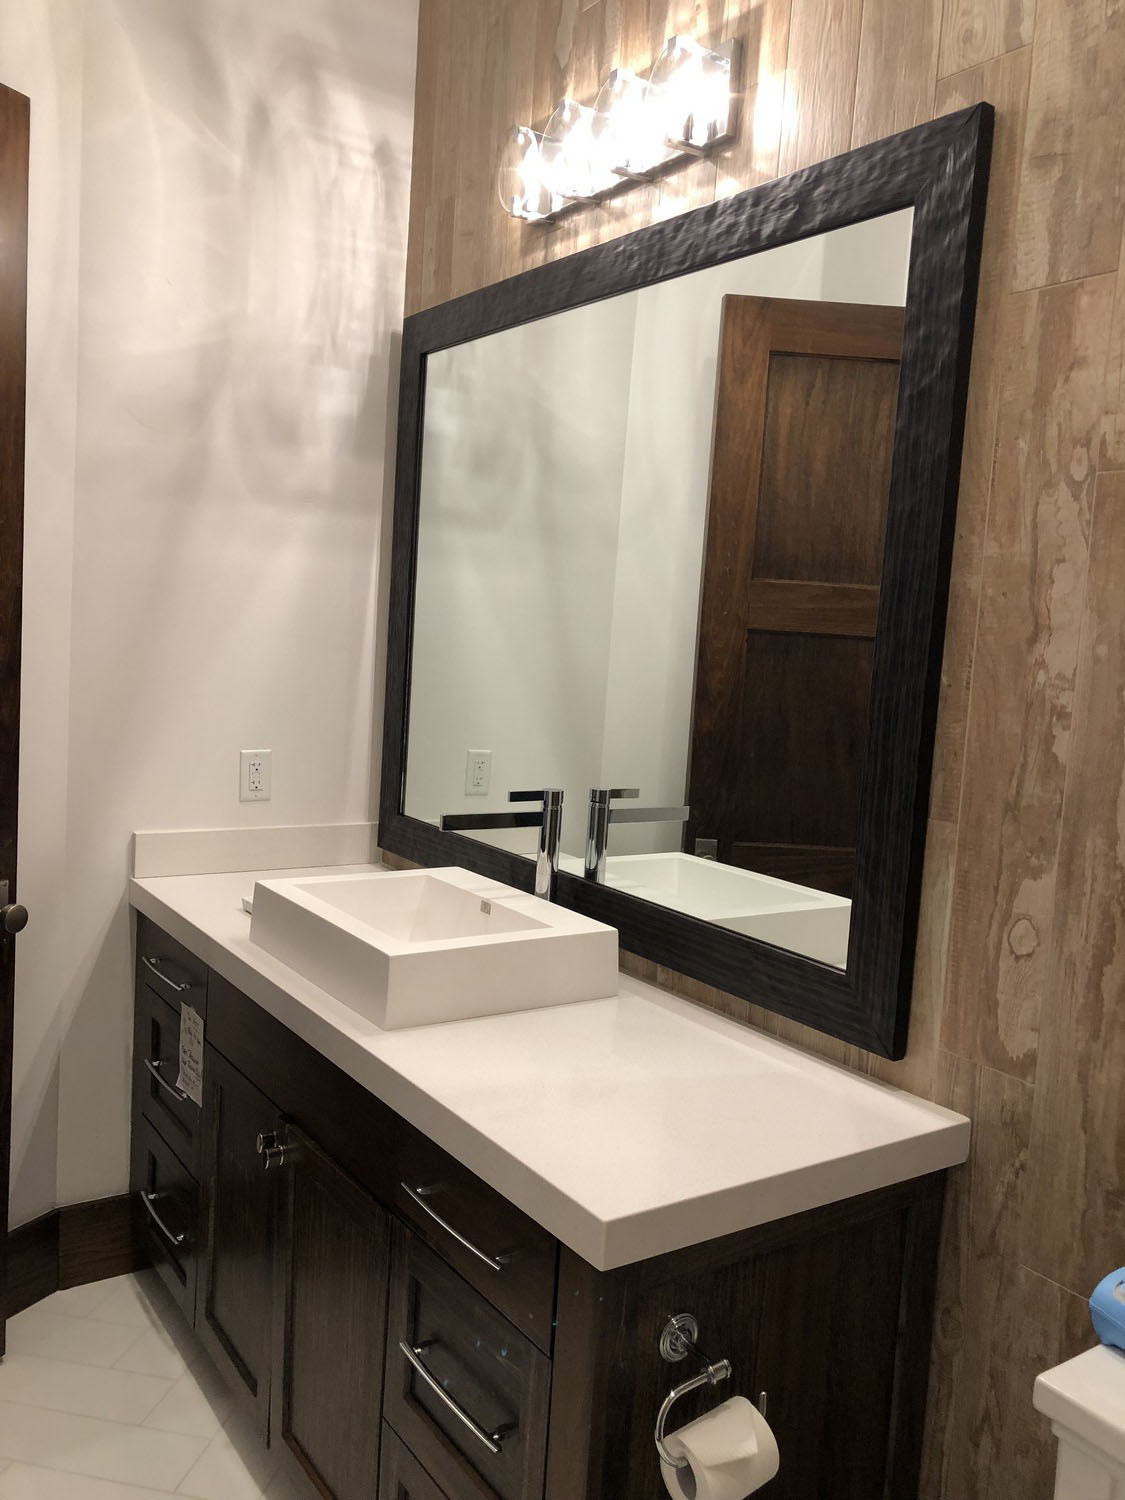 Custom framed mirror by Park City Frame